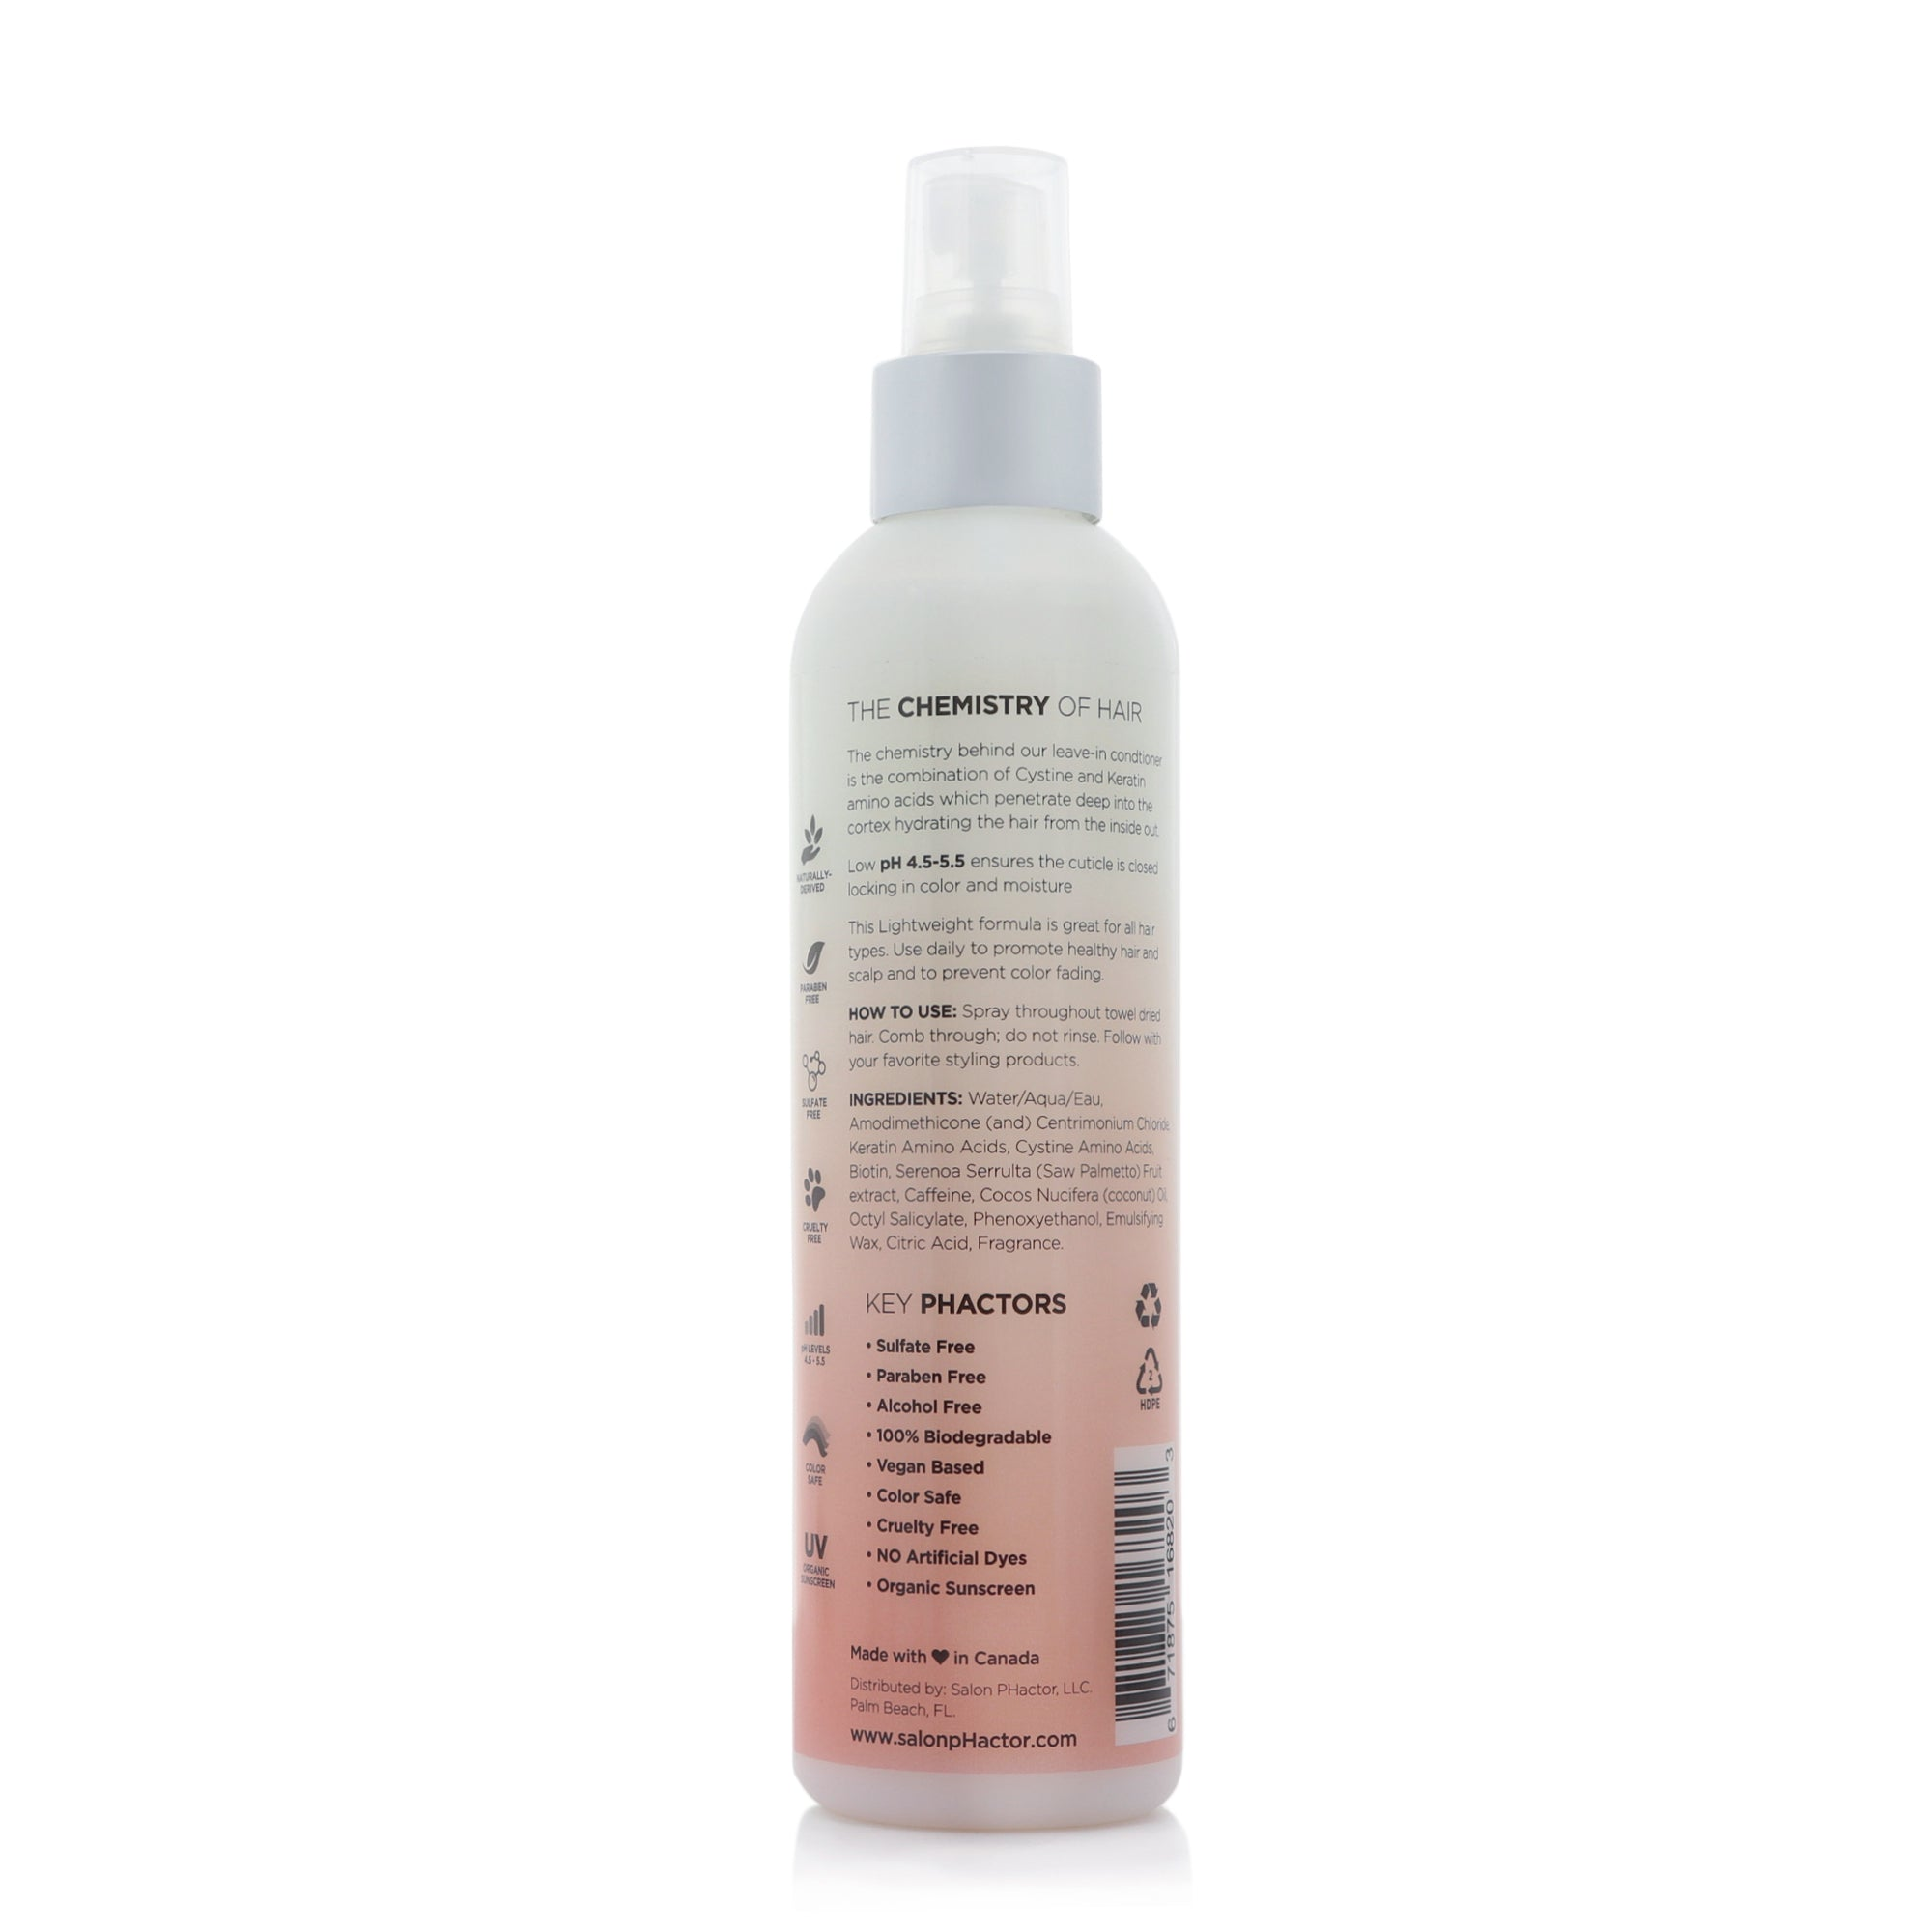 Leave-in Conditioning Spray - Detangler & Styling